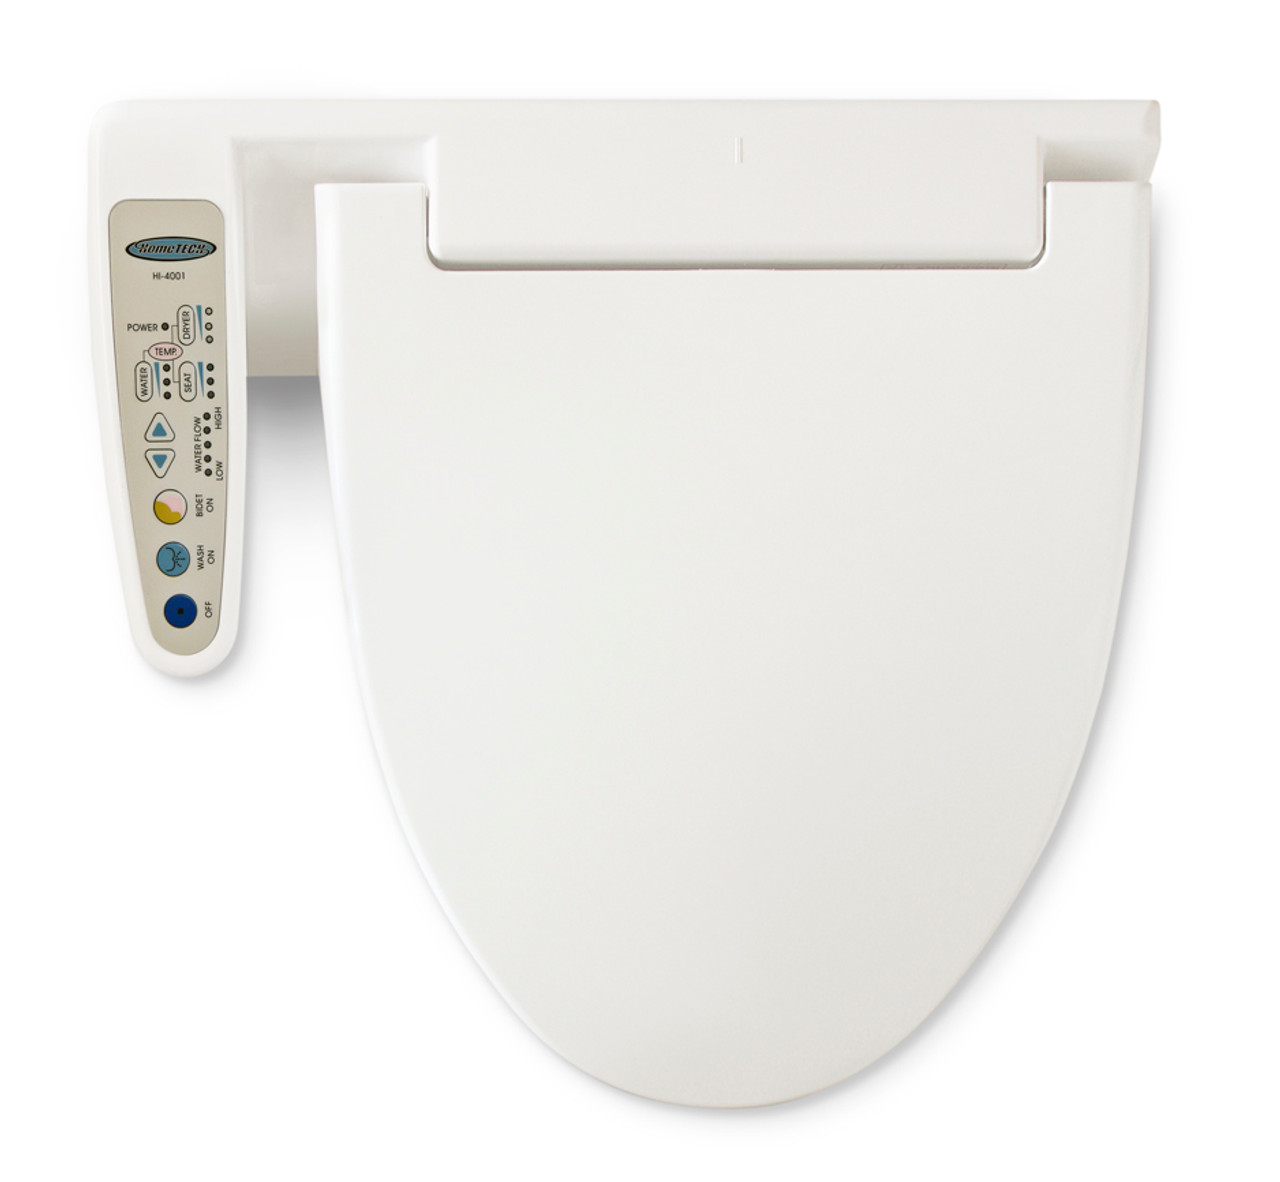 Feel Fresh HI-4001/0 bidet seat with heated air dry, and dual nozzles